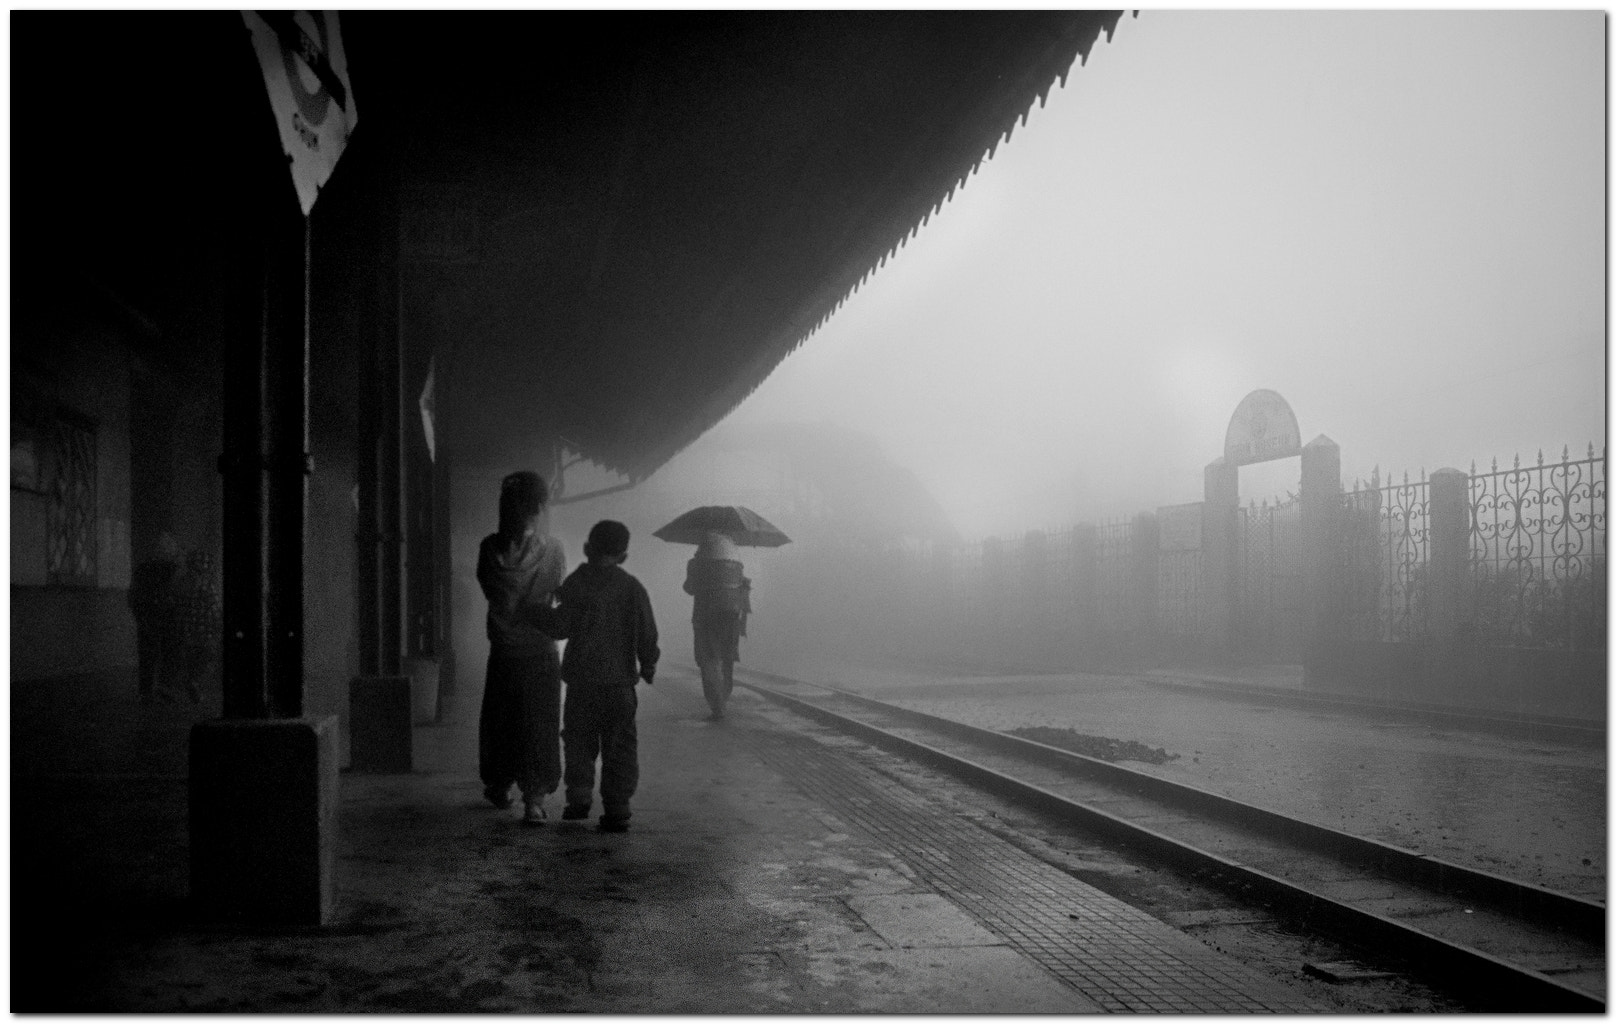 Photograph rain at Ghum Station l Darjeeling by Sumon Das on 500px